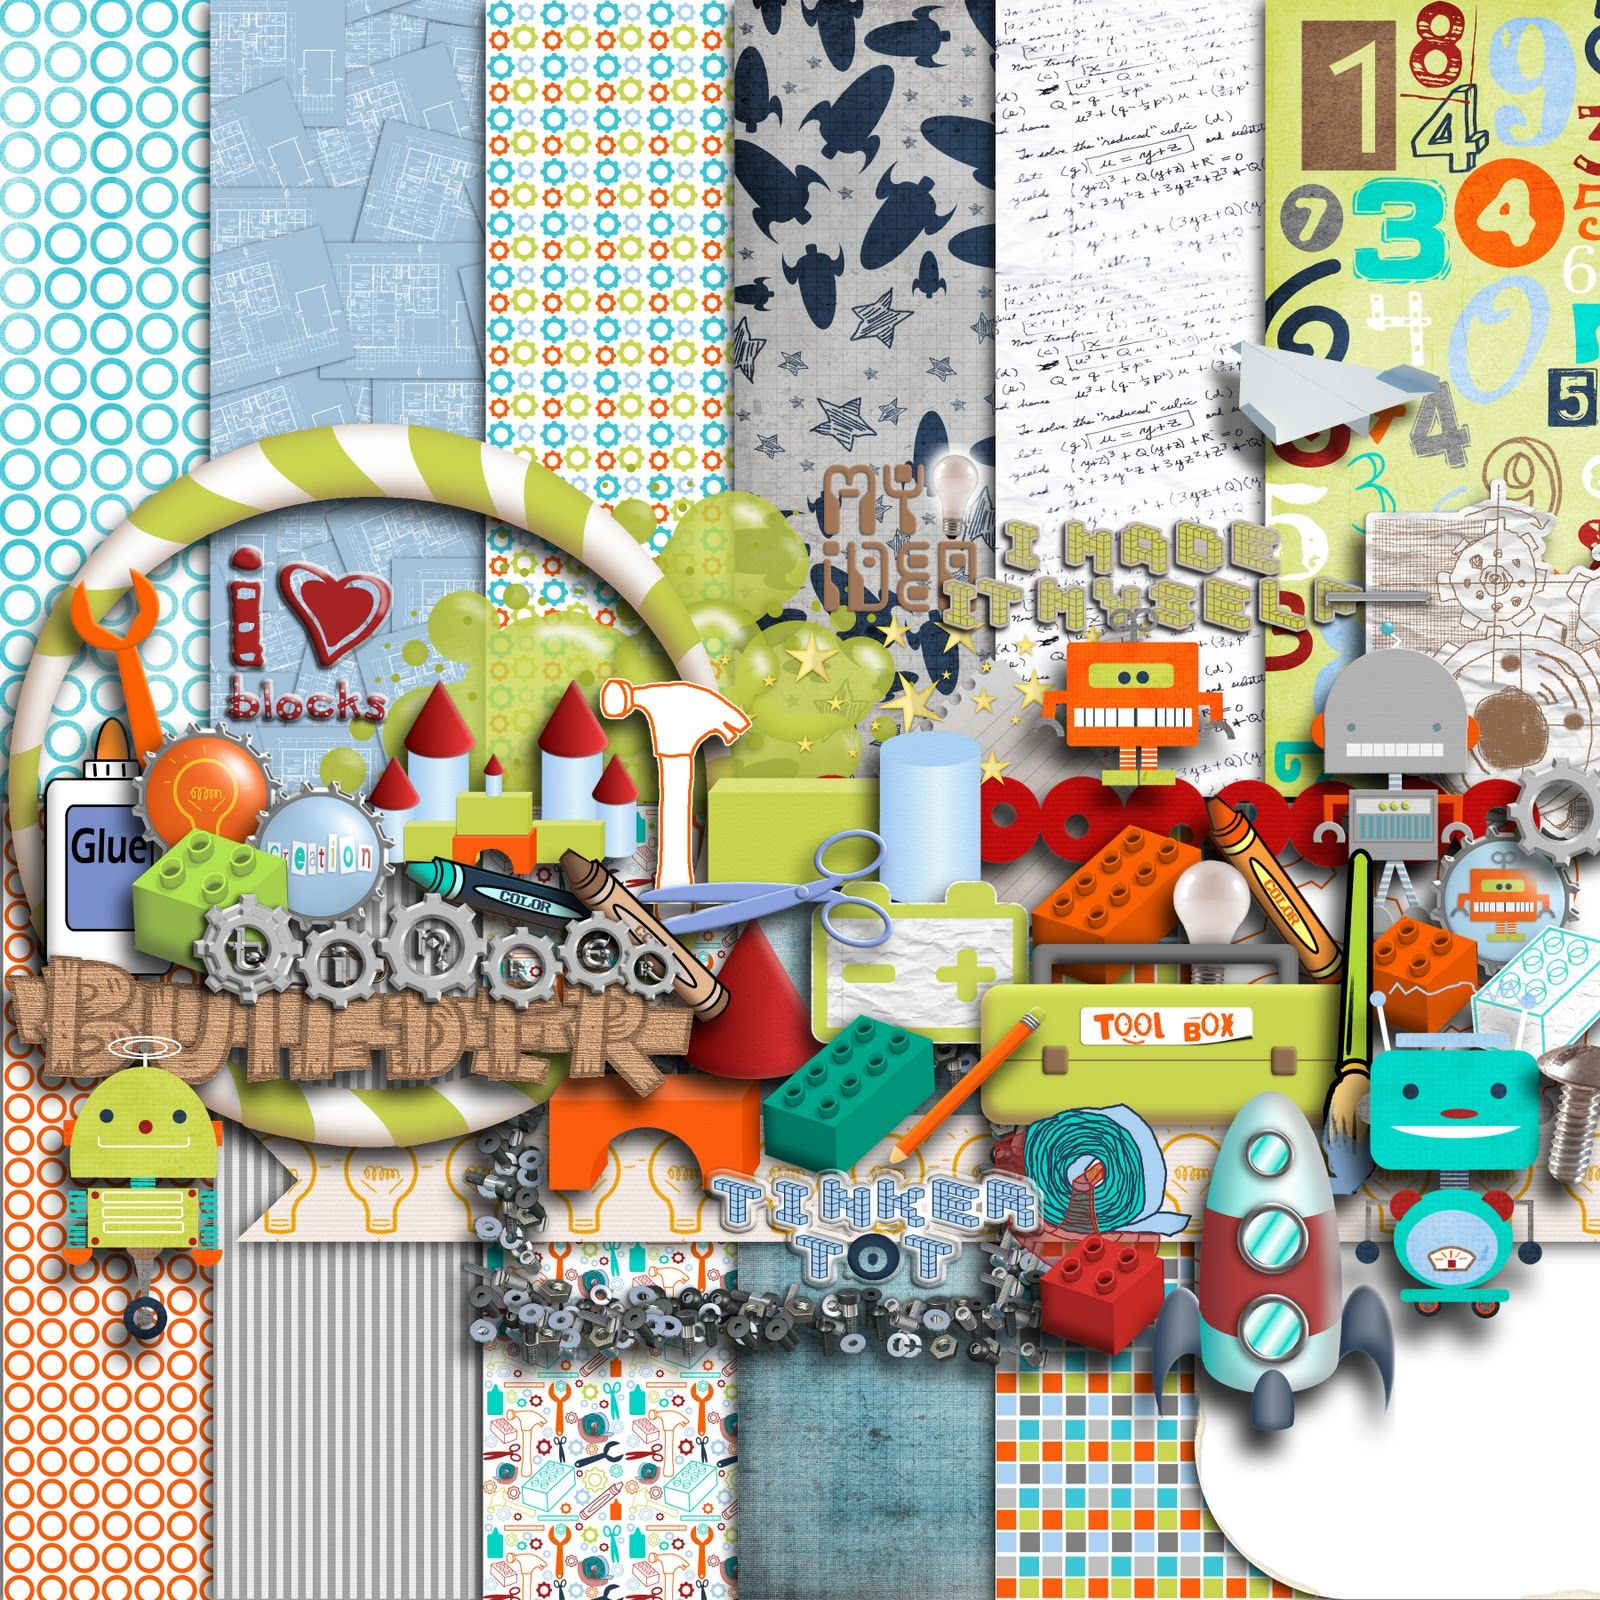 Digital scrapbooking kits free all about scrapbooking ideas -  Tinker Free Digital Scrapbooking Kit